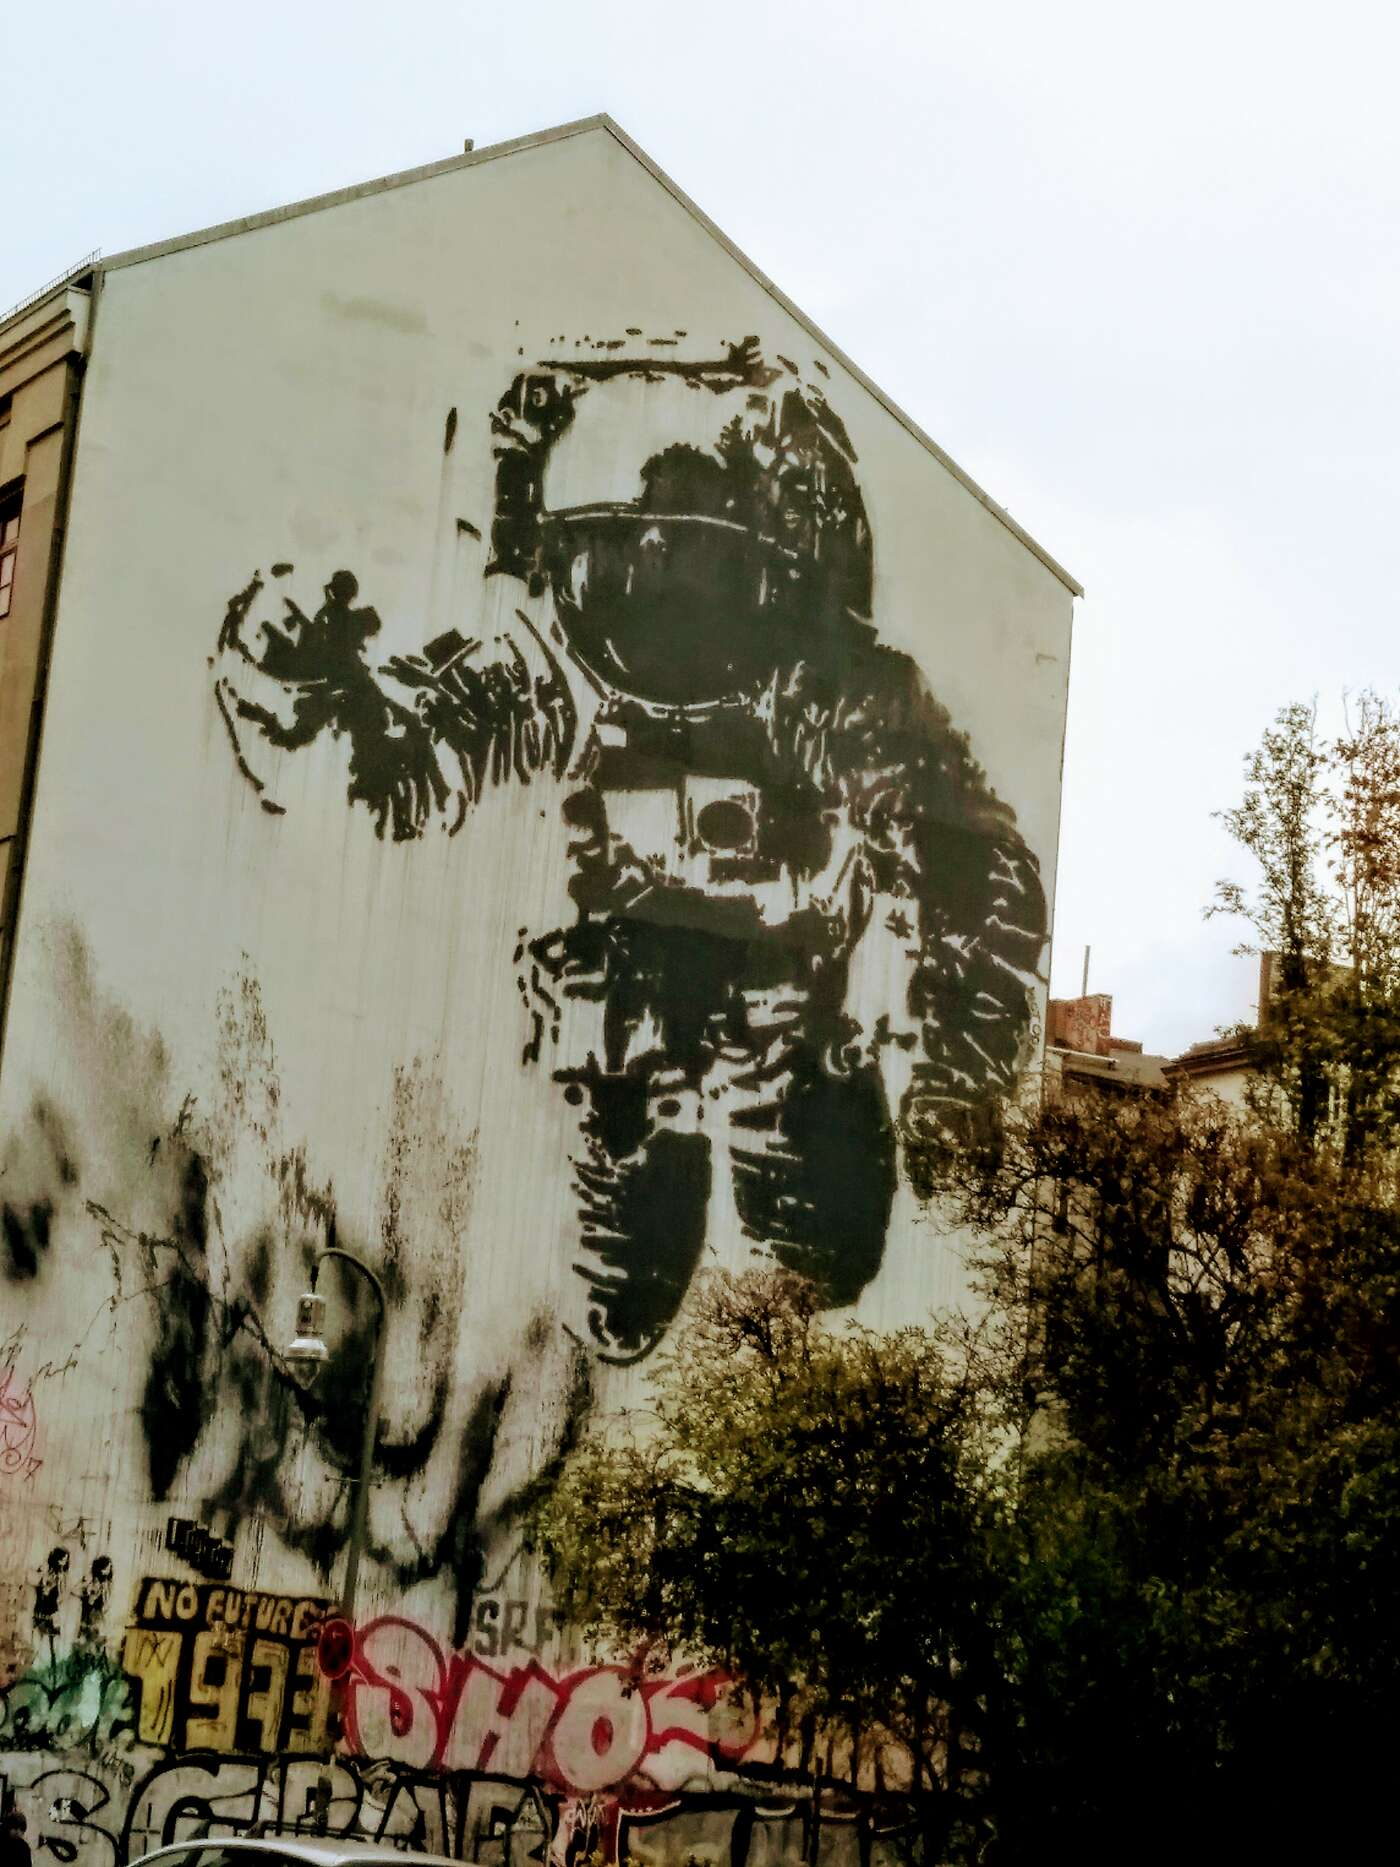 One of the big street art murals I would pass on my walk.